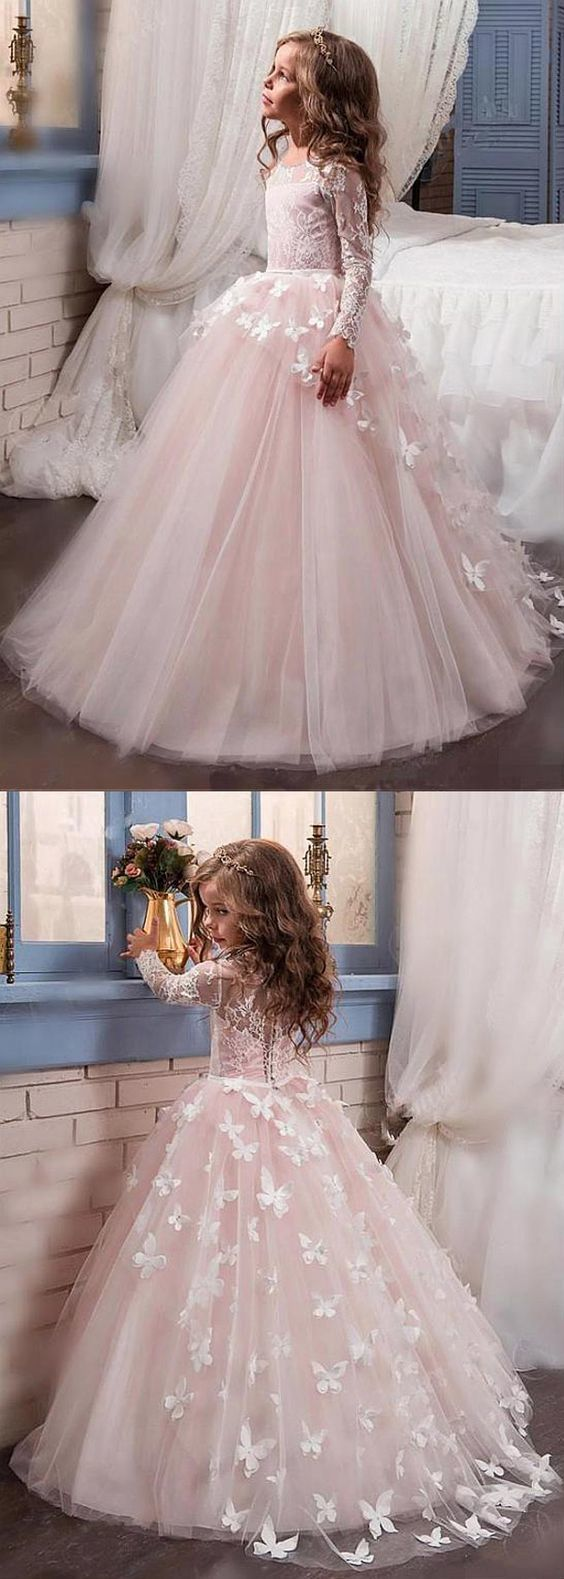 Stunning Tulle & Lace Scoop Neckline Ball Gown Flower Girl Dresses With Beaded